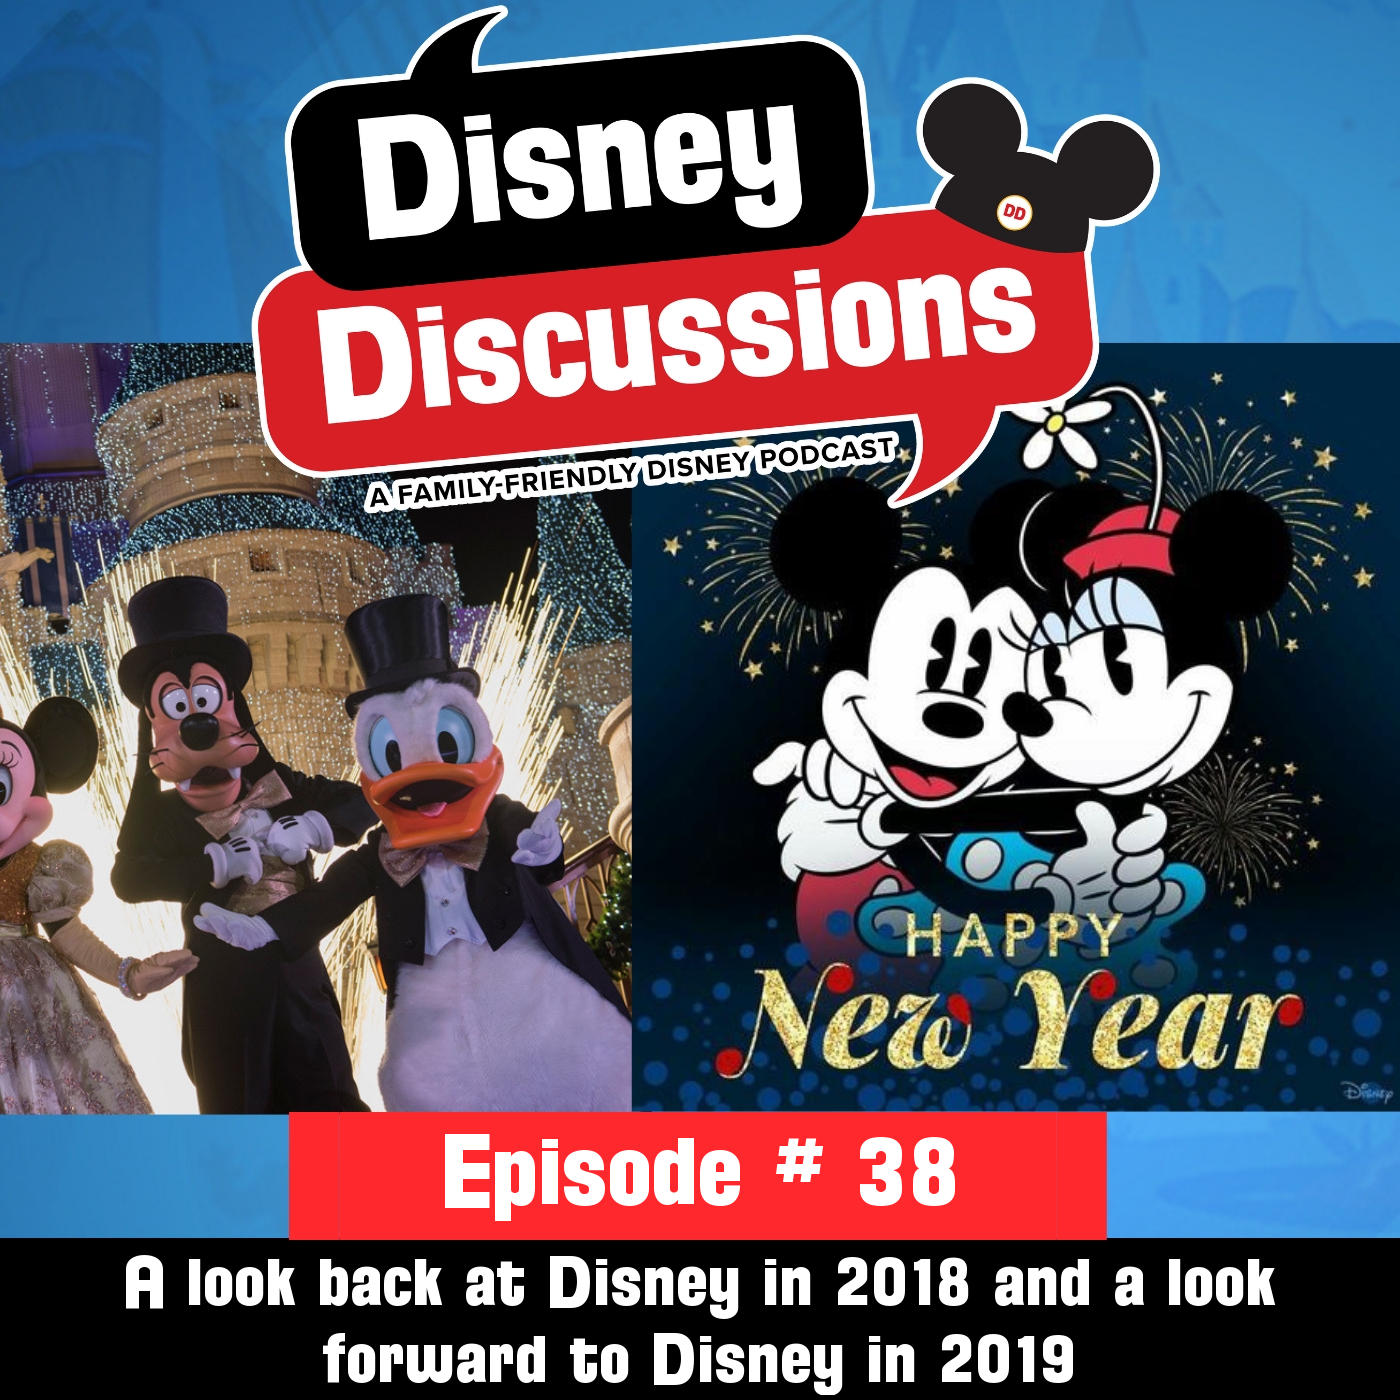 A look back at Disney in 2018 and a look forward to Disney in 2019